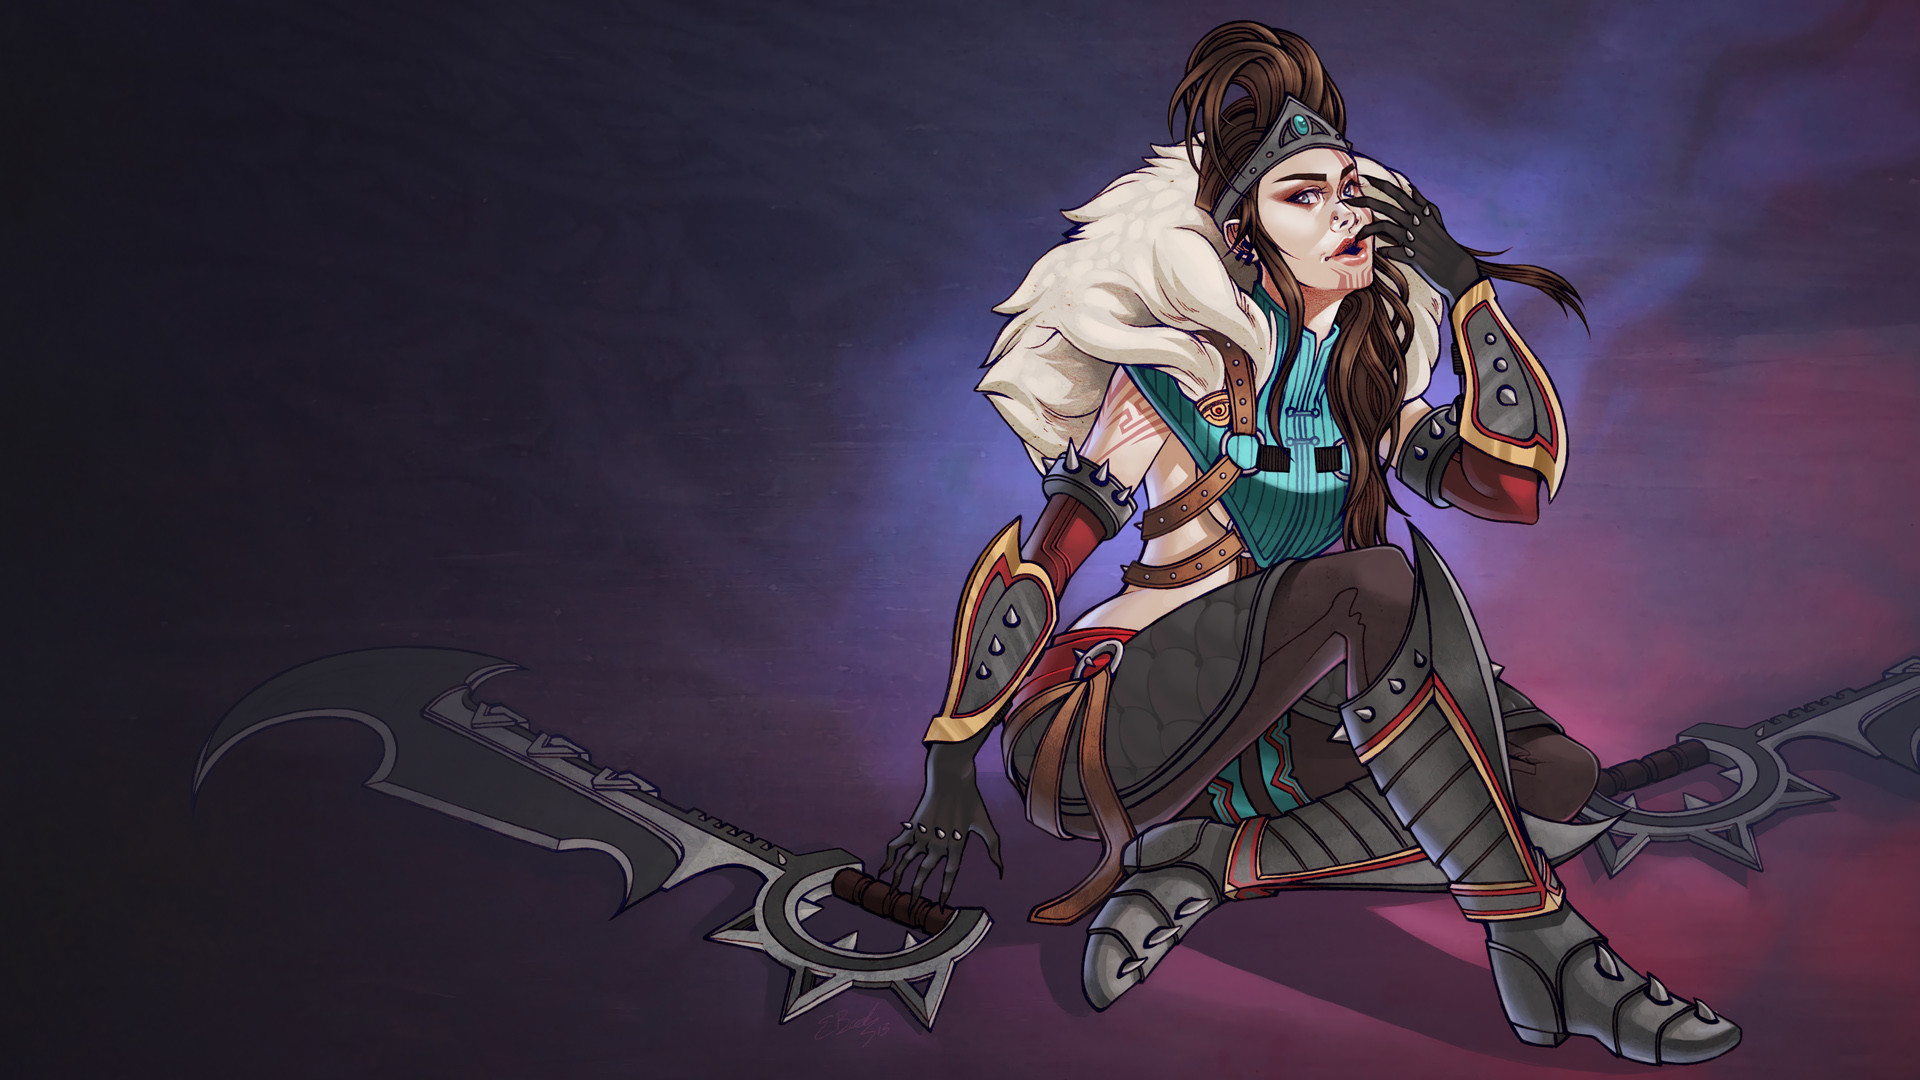 1920x1080 Female Draven by ElizabethBeals Gender Swap Bend HD Wallpaper Fan Art  Artwork League of Legends lol